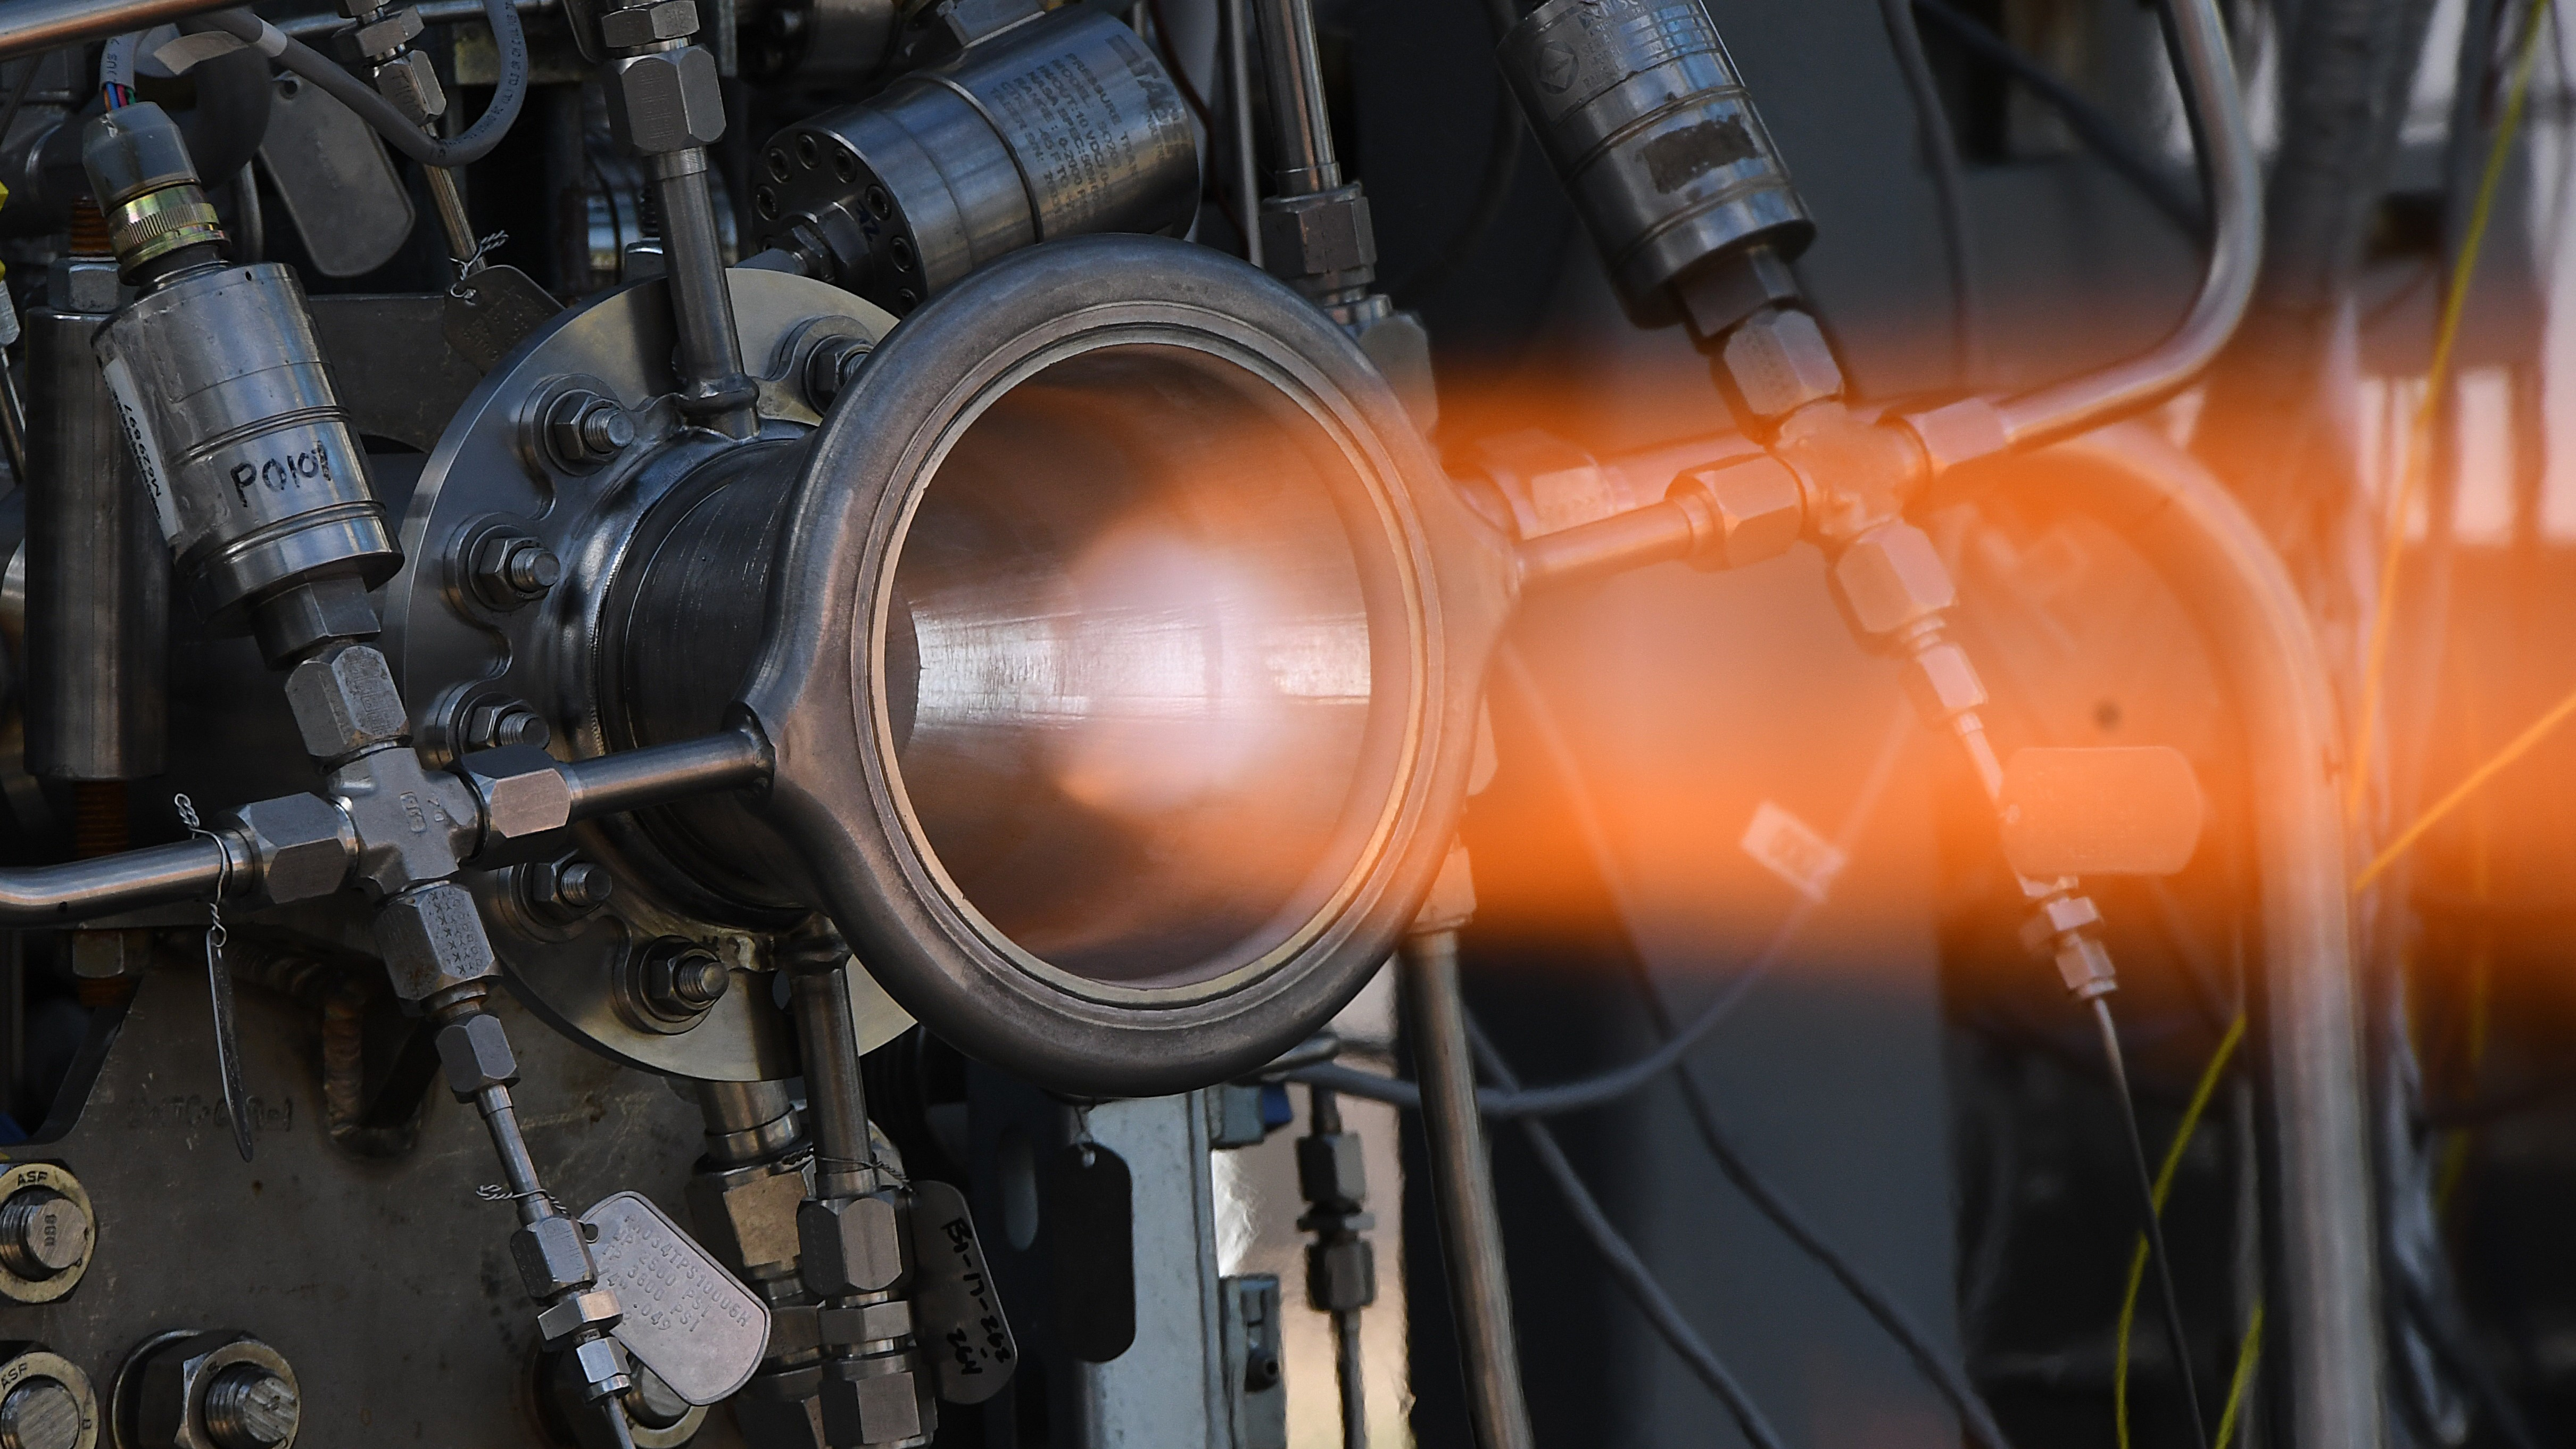 D Print Nasa Has Developed A Way To 3 D Print Its Rocket Nozzles Mit